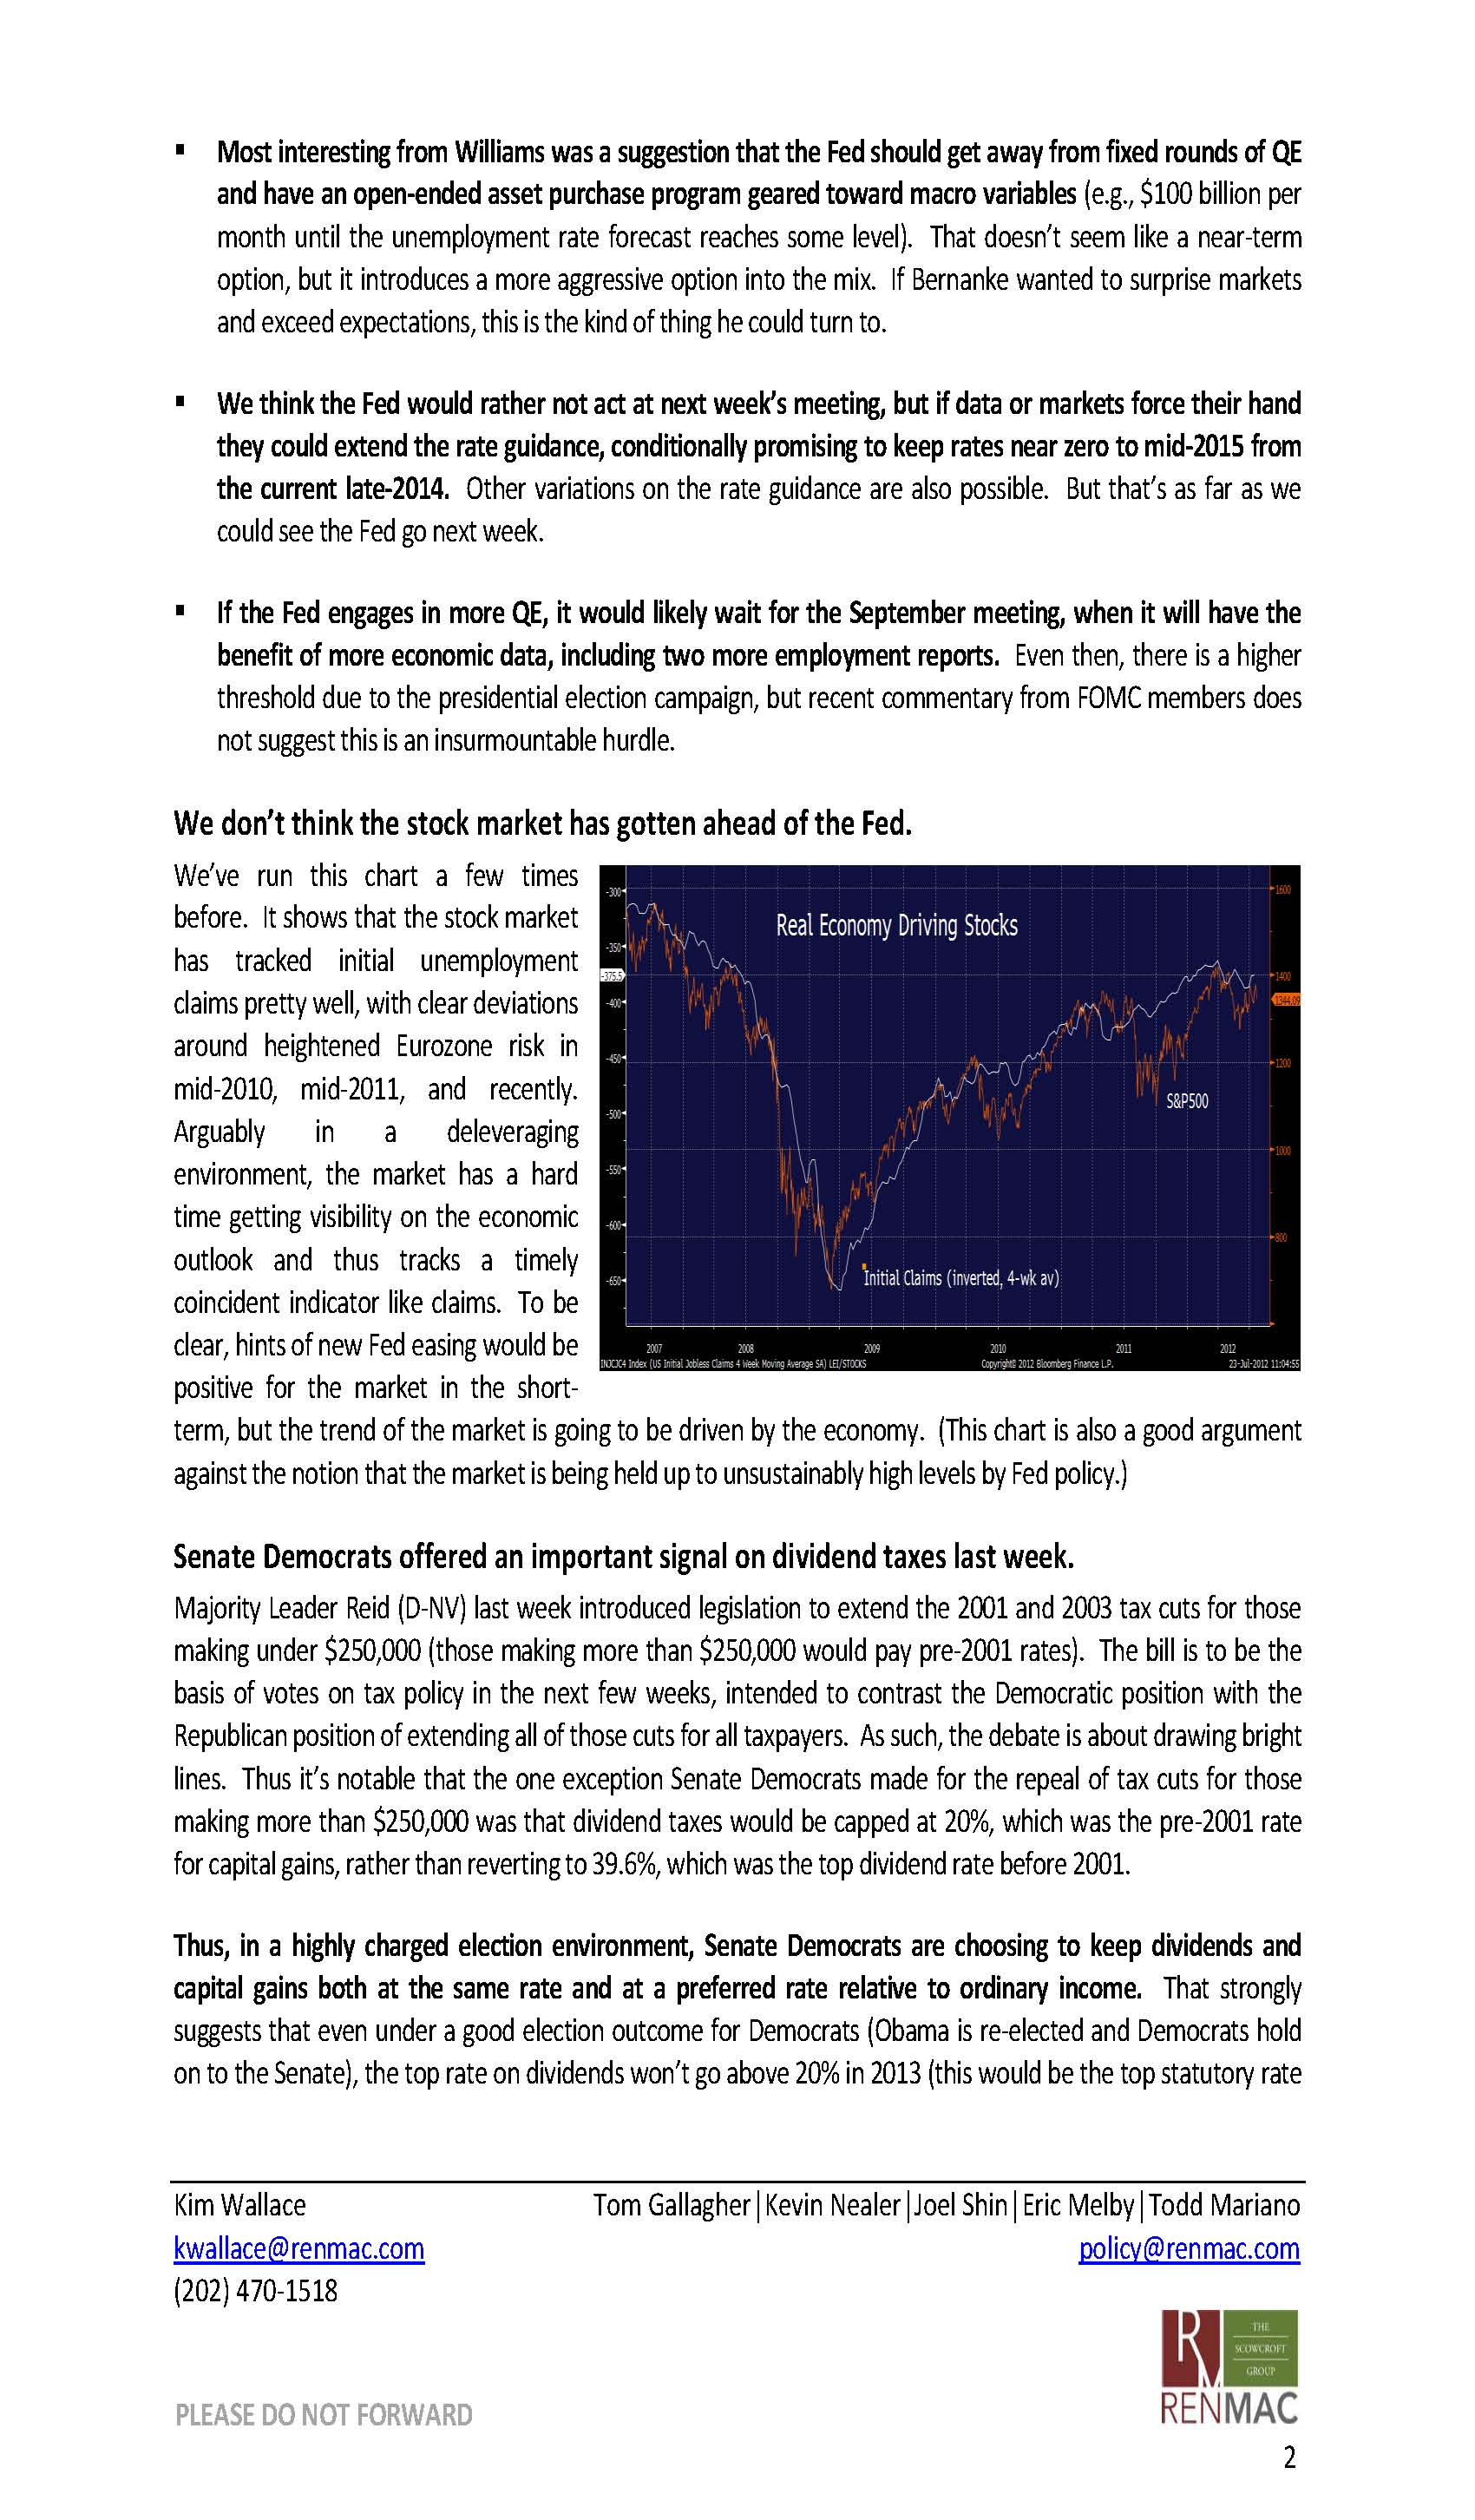 2012-07-23 WDPD_Page_2